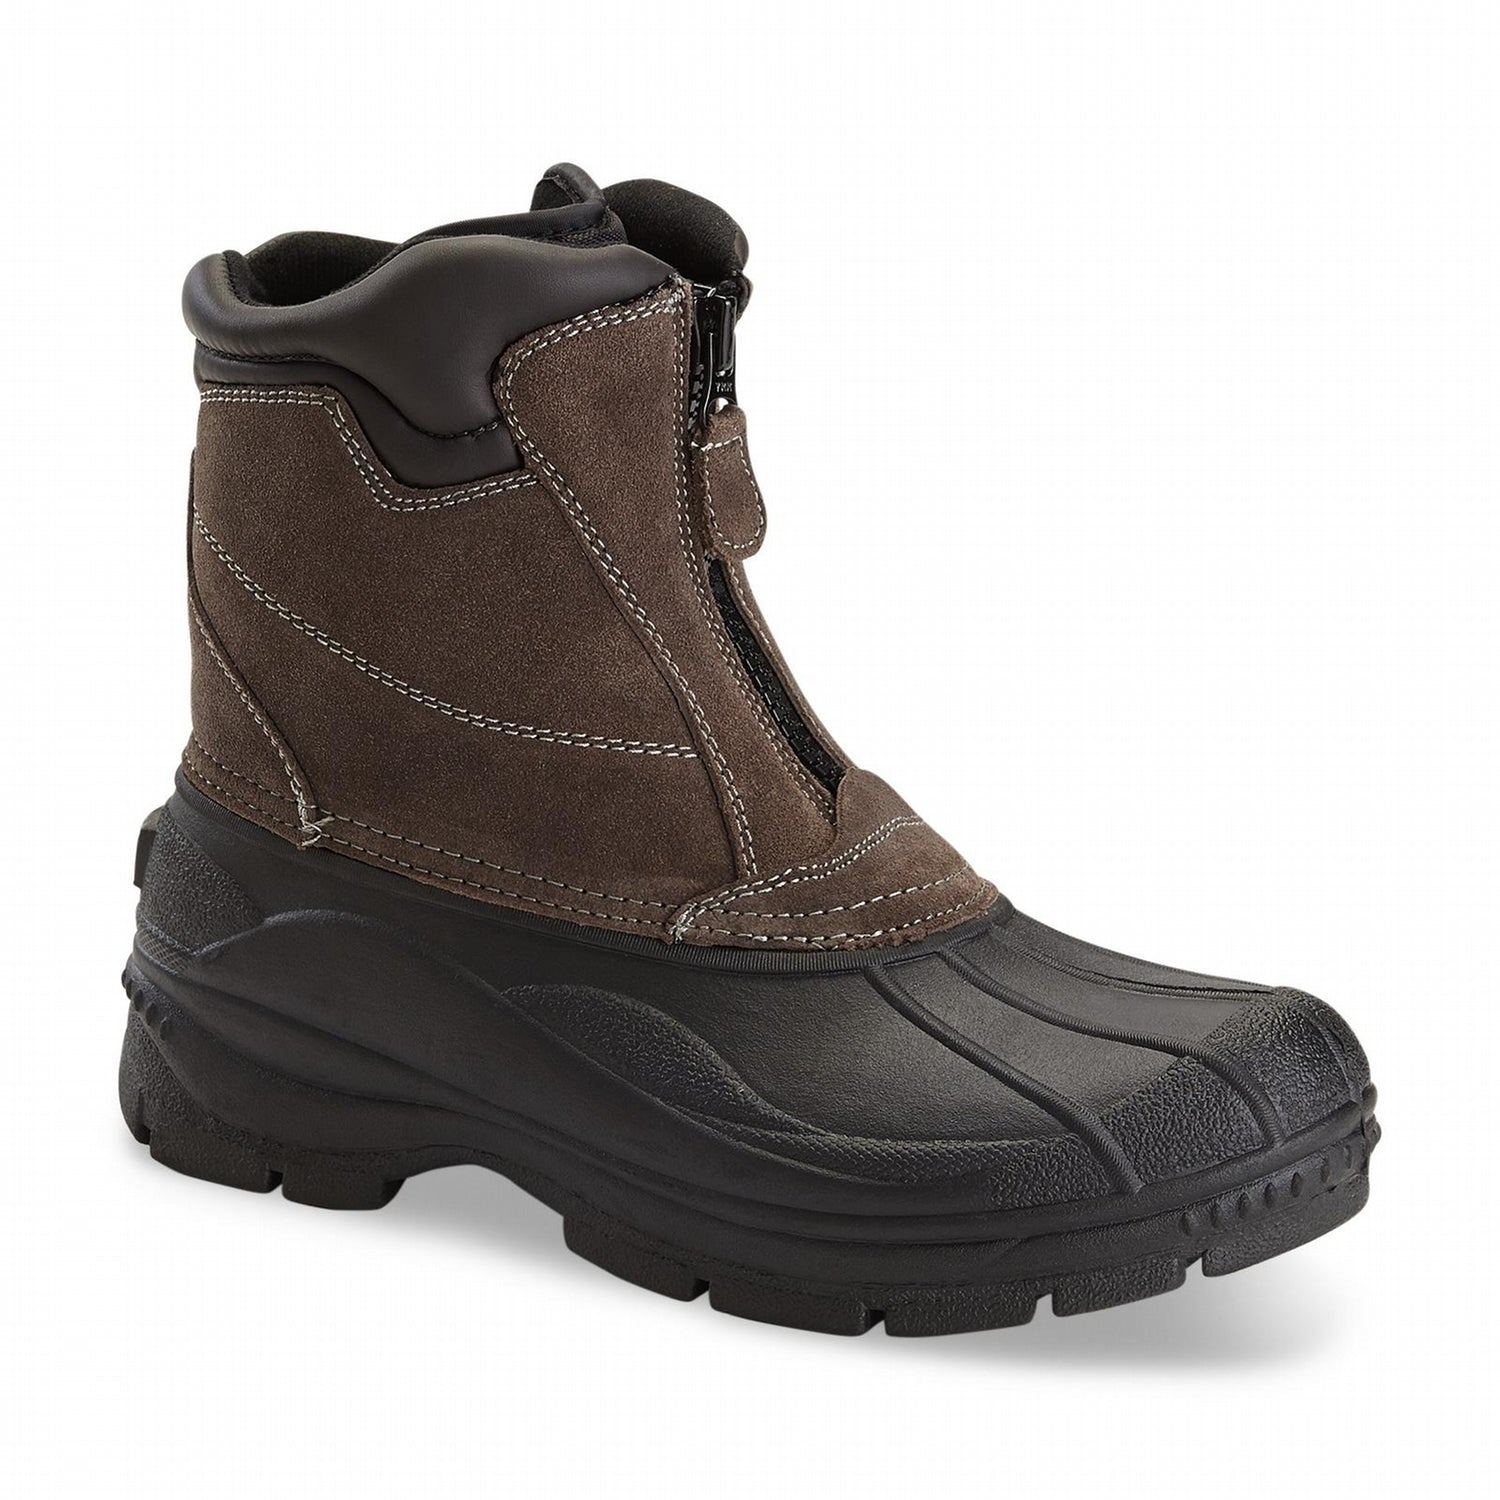 'Totes' Men's Glacier Zip Insulated Boots - Brown